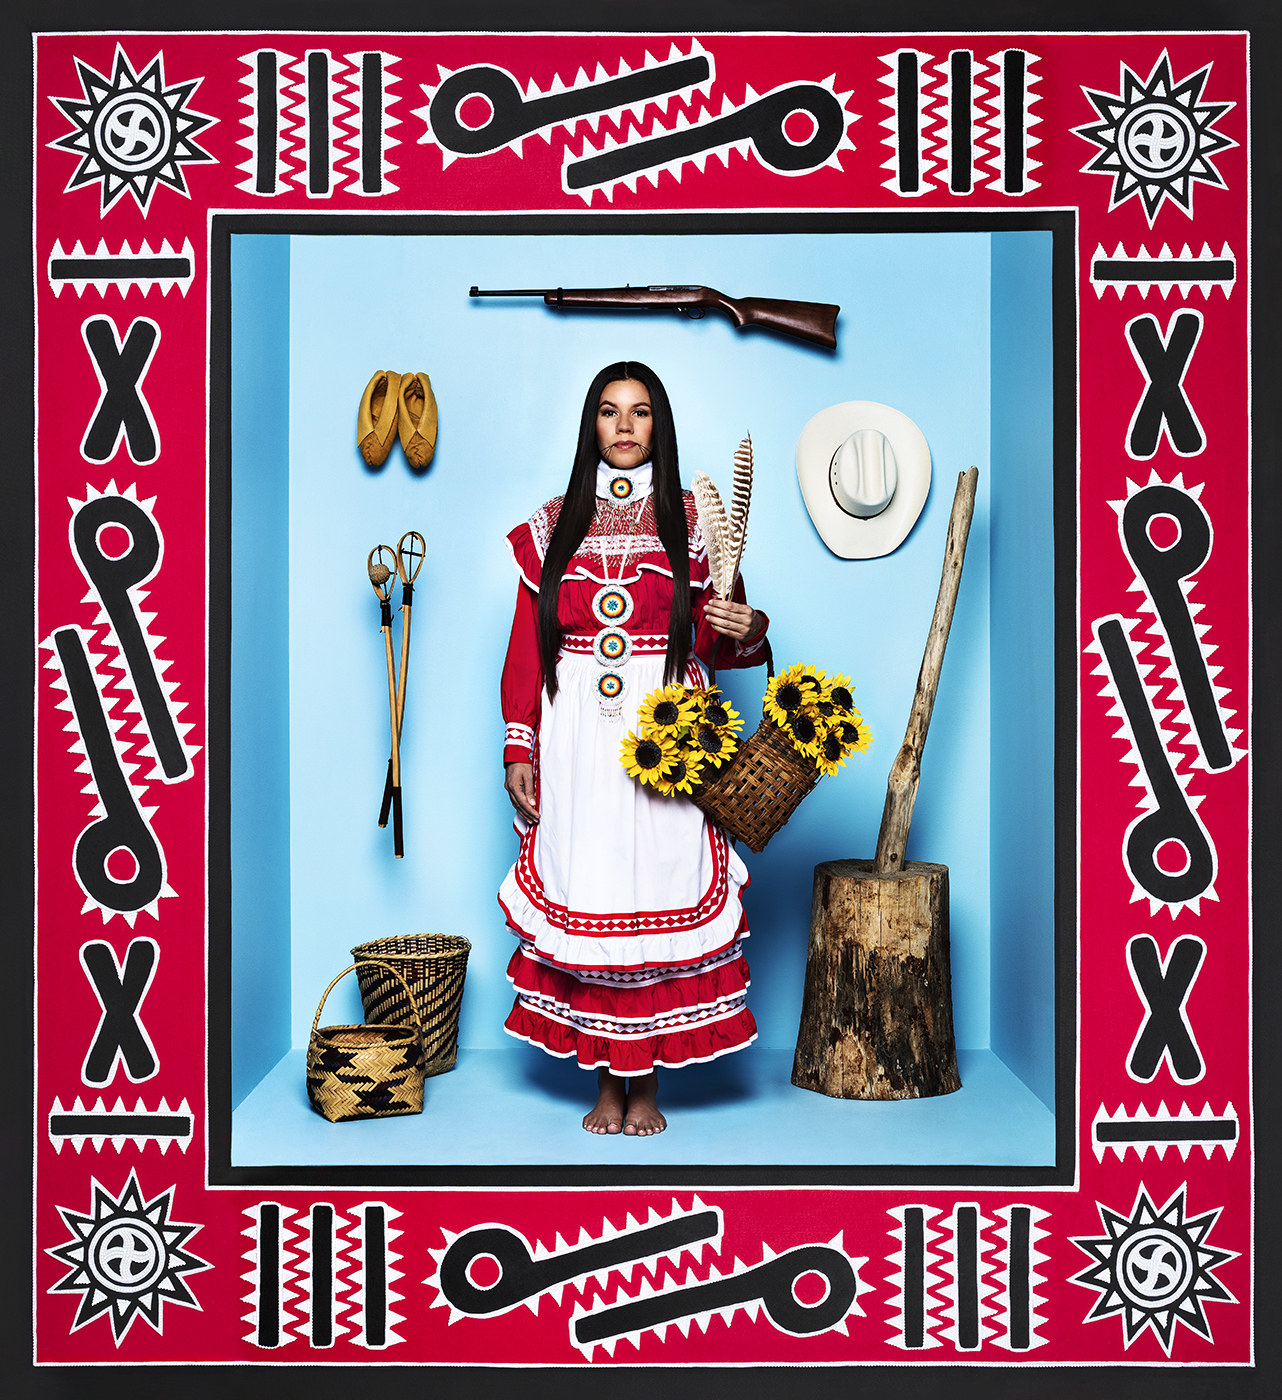 A Native American woman surrounded by pioneering items and a colorful border